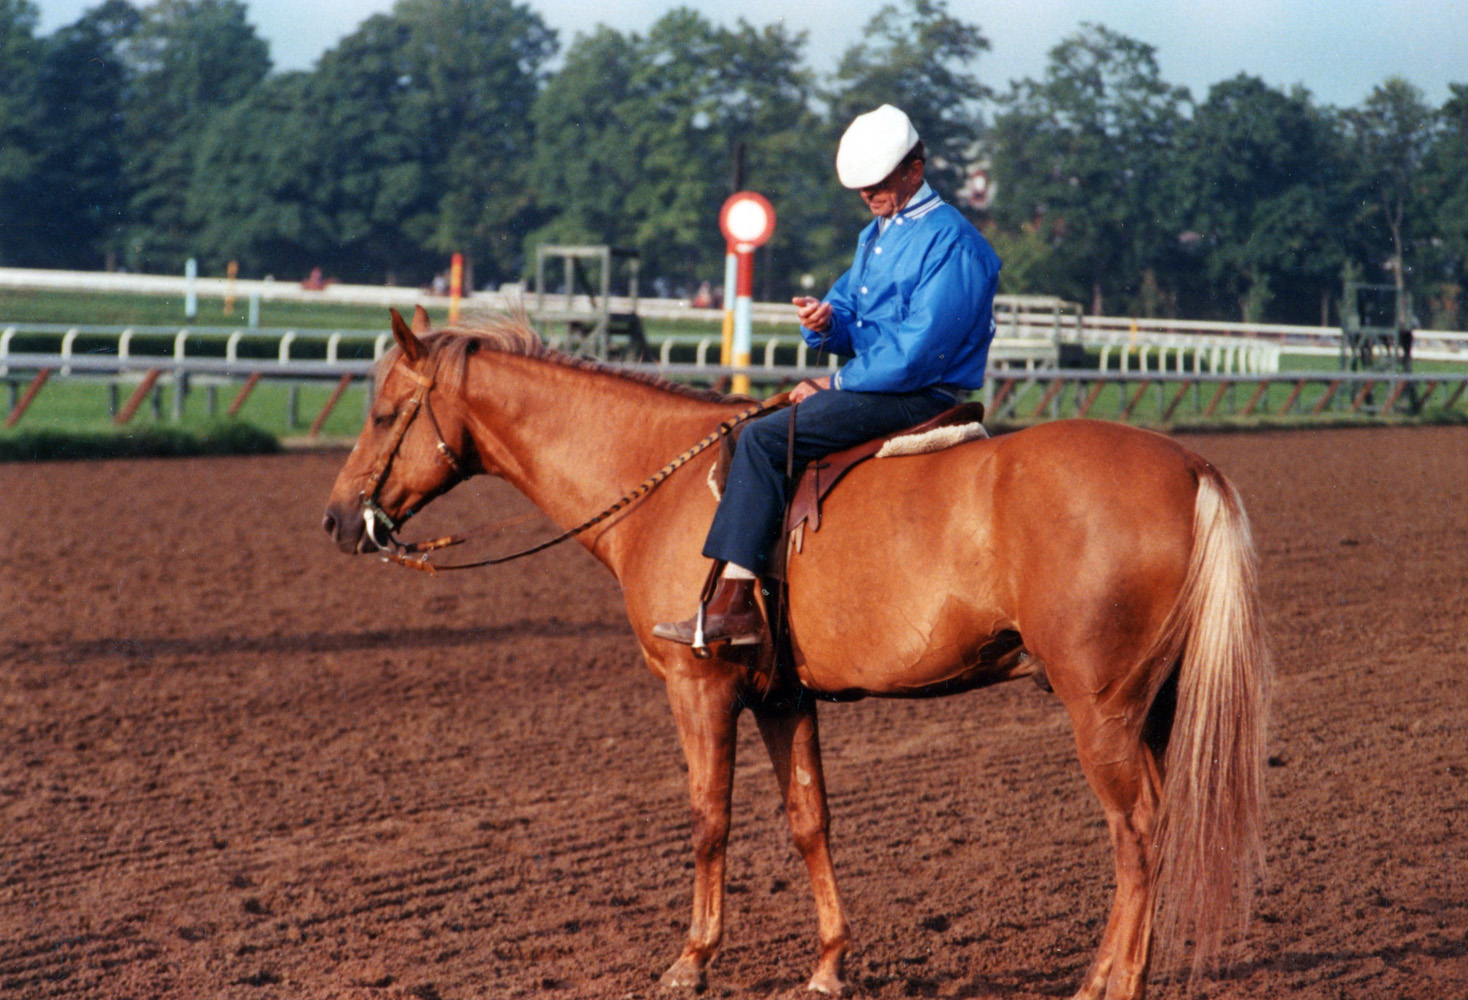 Woody Stephens on Rex, a gift from Fred Astaire, at Saratoga (Mike Pender/Museum Collection)